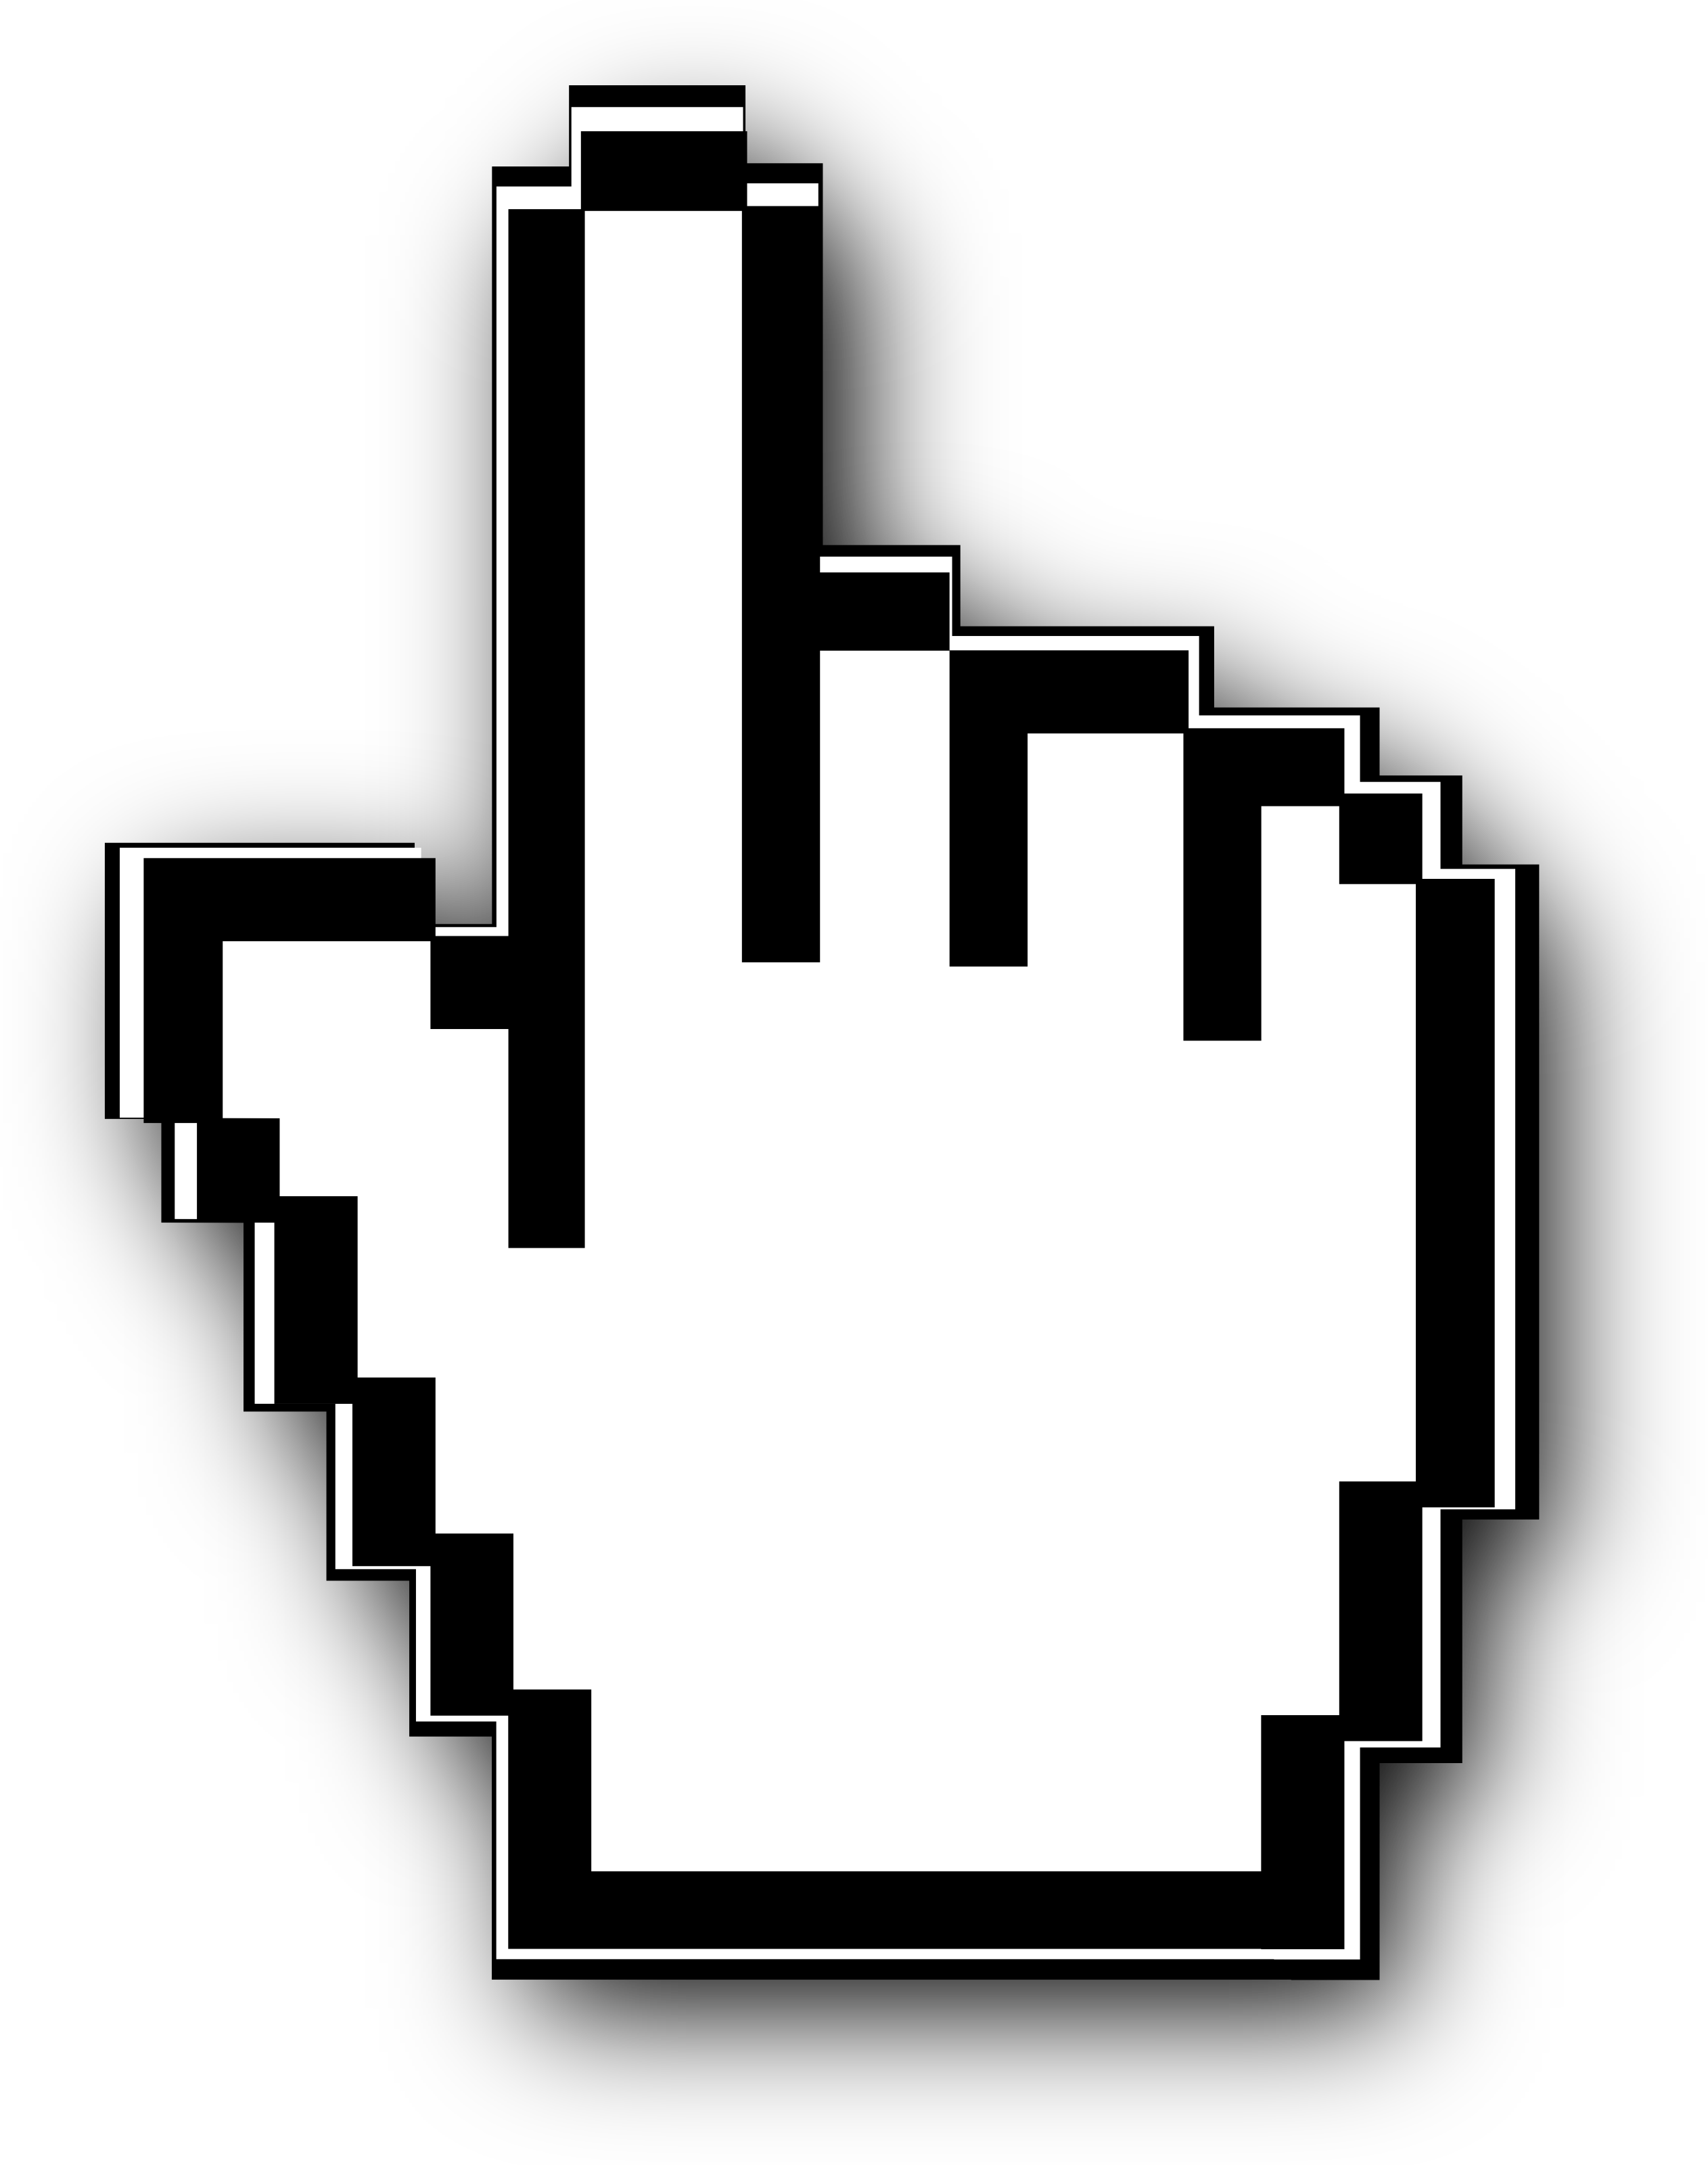 Cursor Hand Image PNG Image